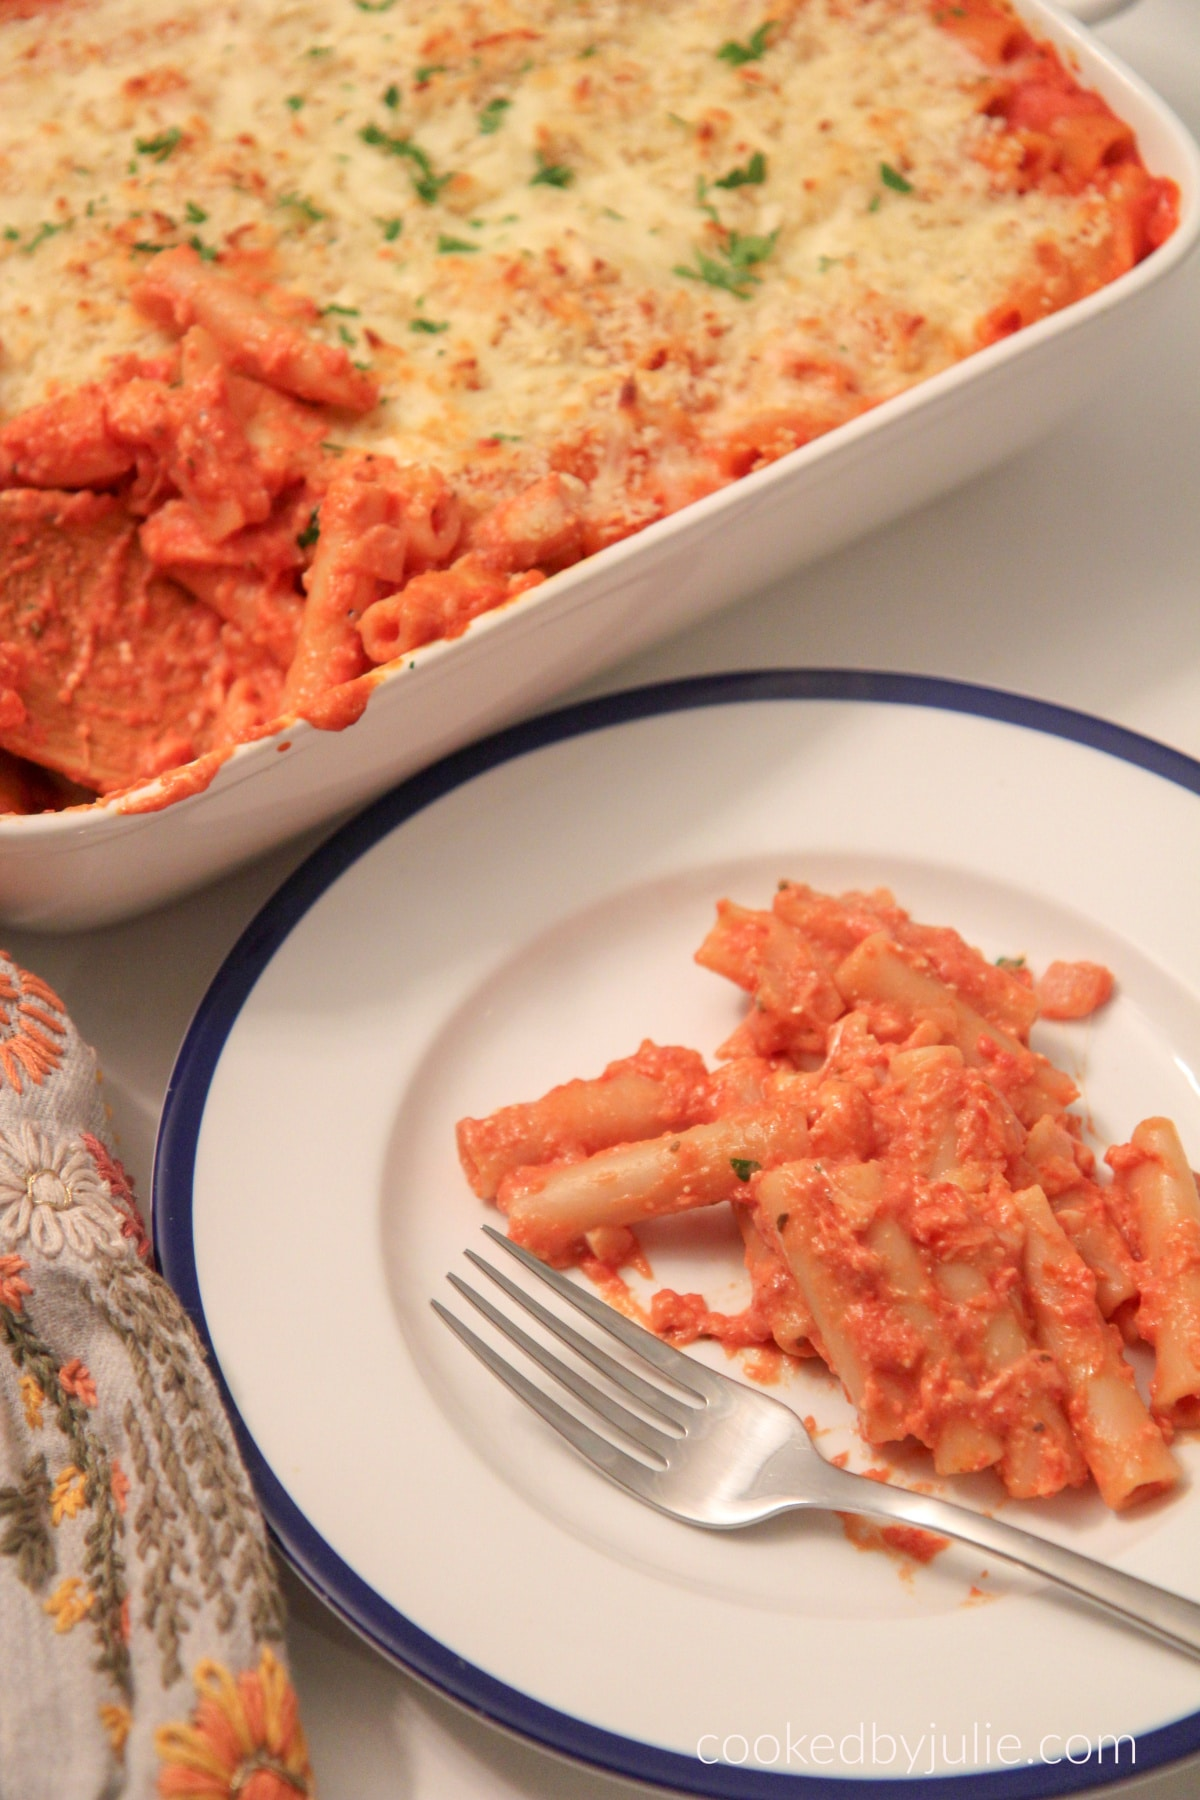 a plate of baked ziti